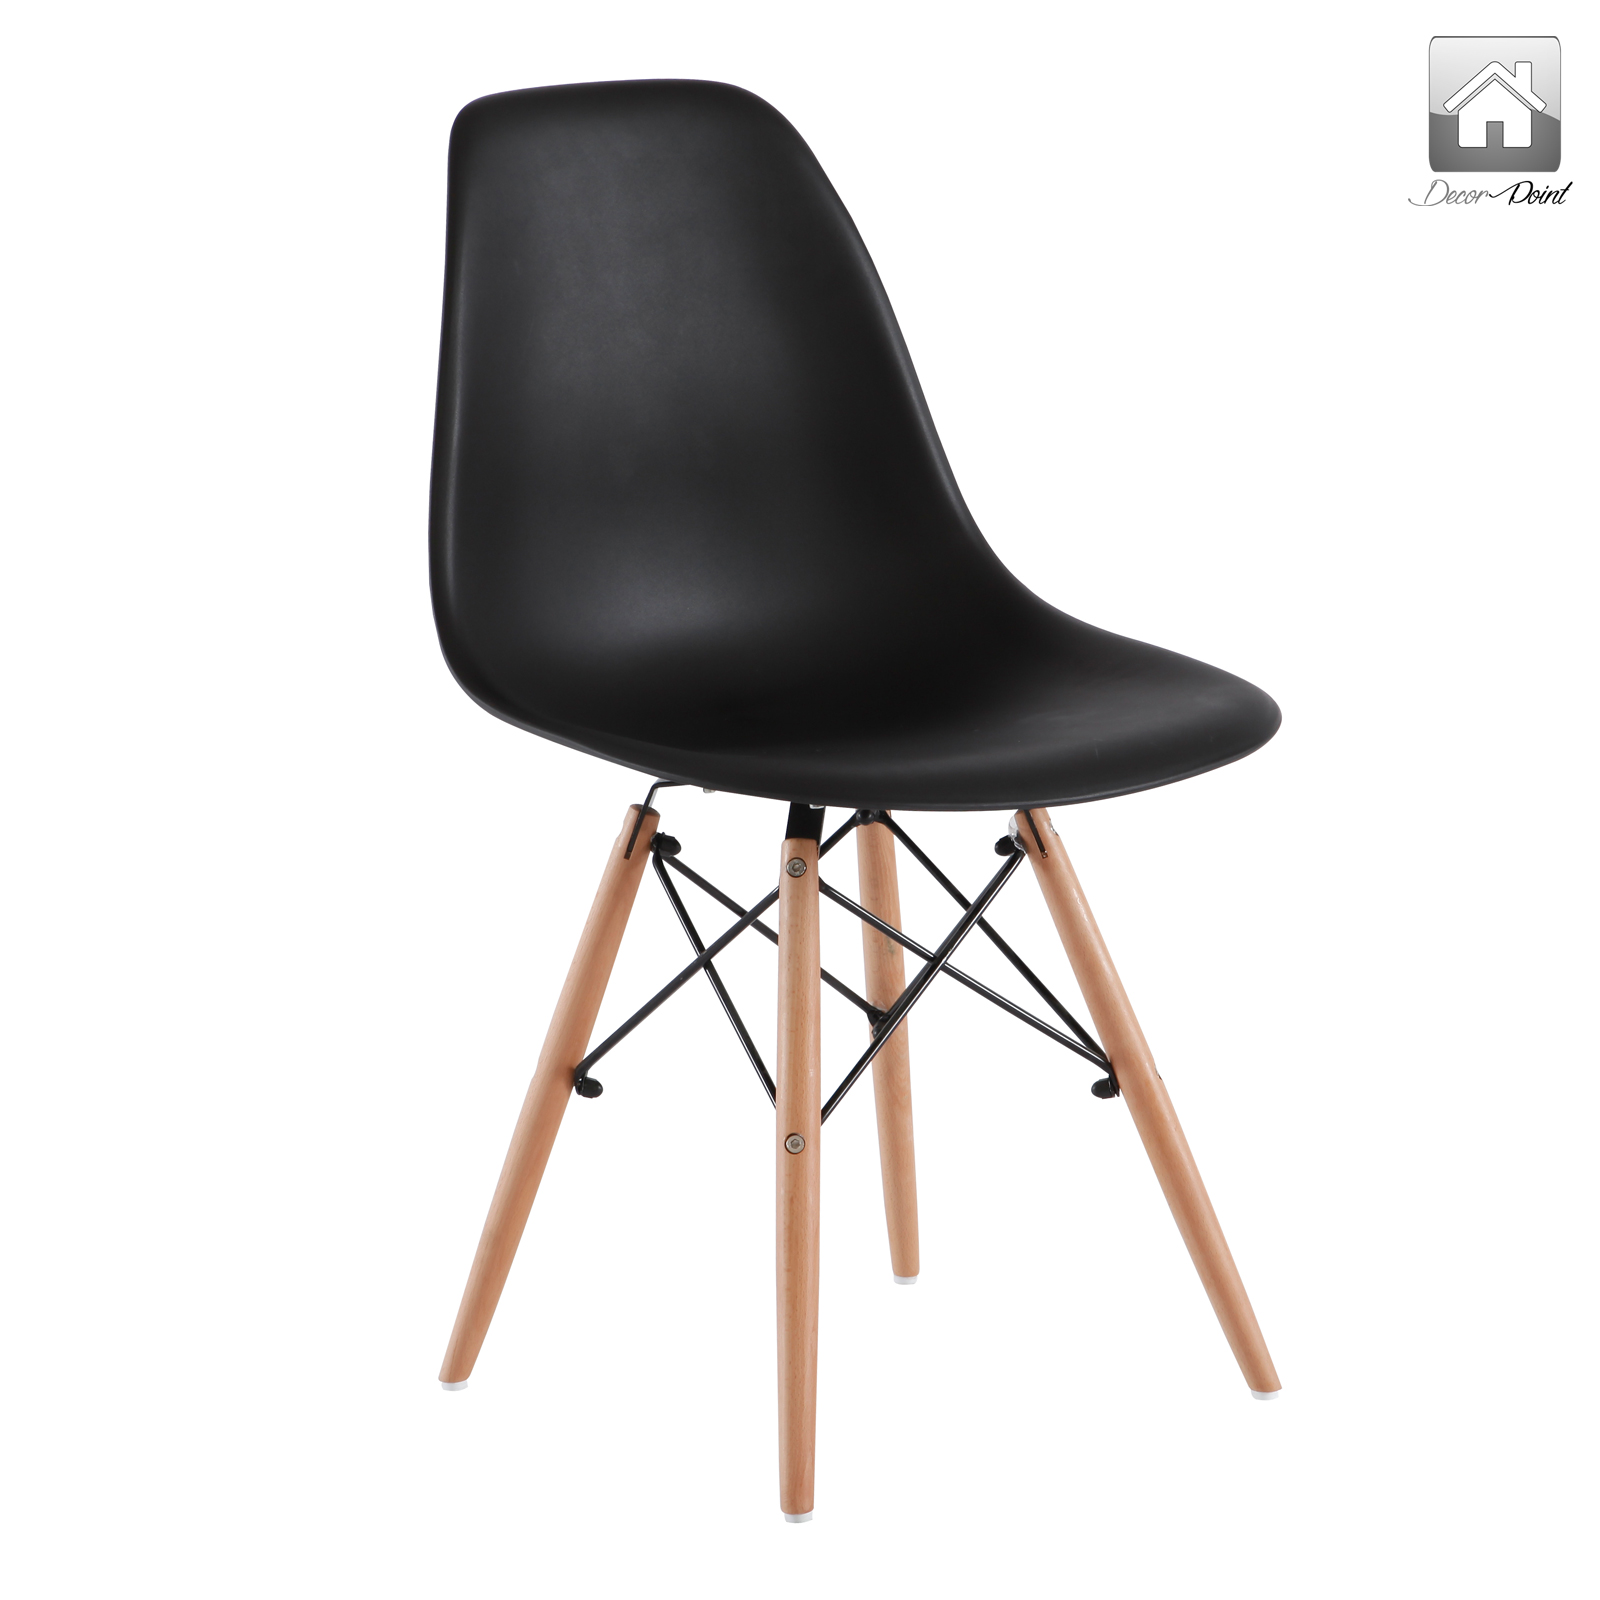 Eames Chair Replica 100 Eames Chair Leather Care Eames  : Eames Chick 06 from rbcant.us size 1600 x 1600 jpeg 328kB